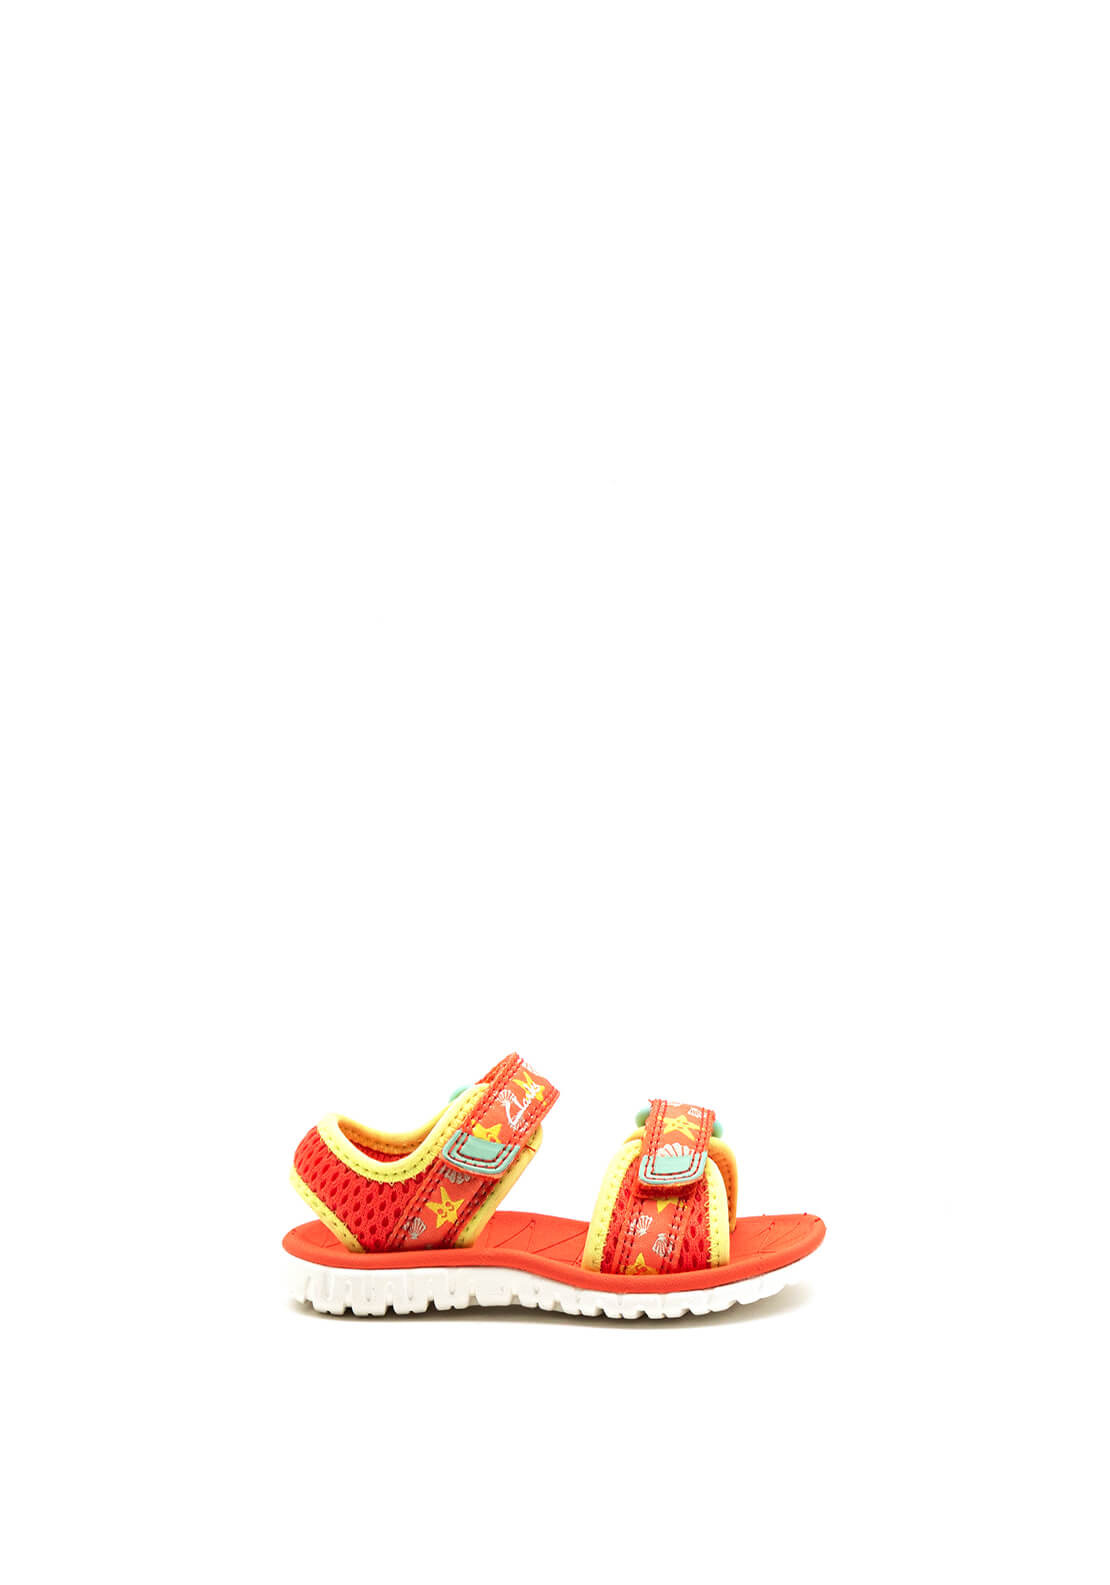 Clarks Baby Girls Surfing Tide Open Toe Sandals, Coral